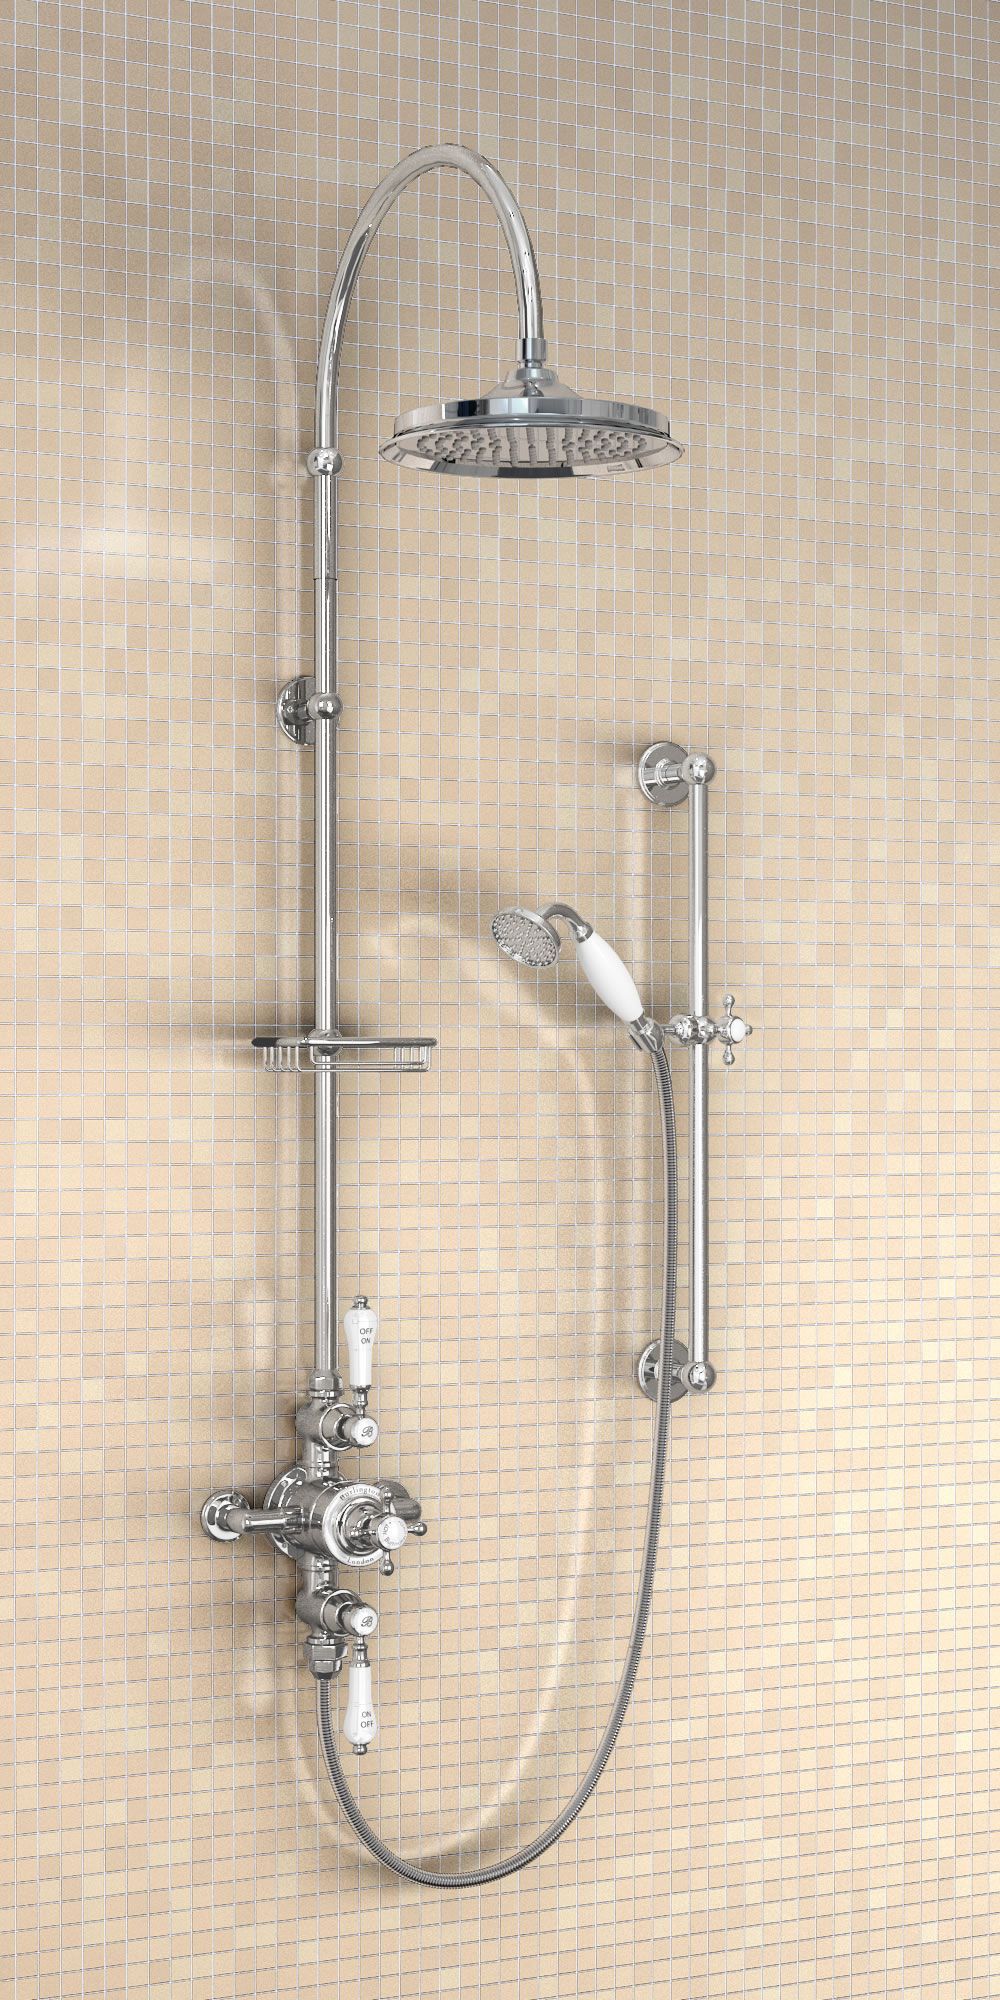 Avon Exposed Thermostatic Shower Valve Standard Vertical Riser Curved Shower Arm For Vertical